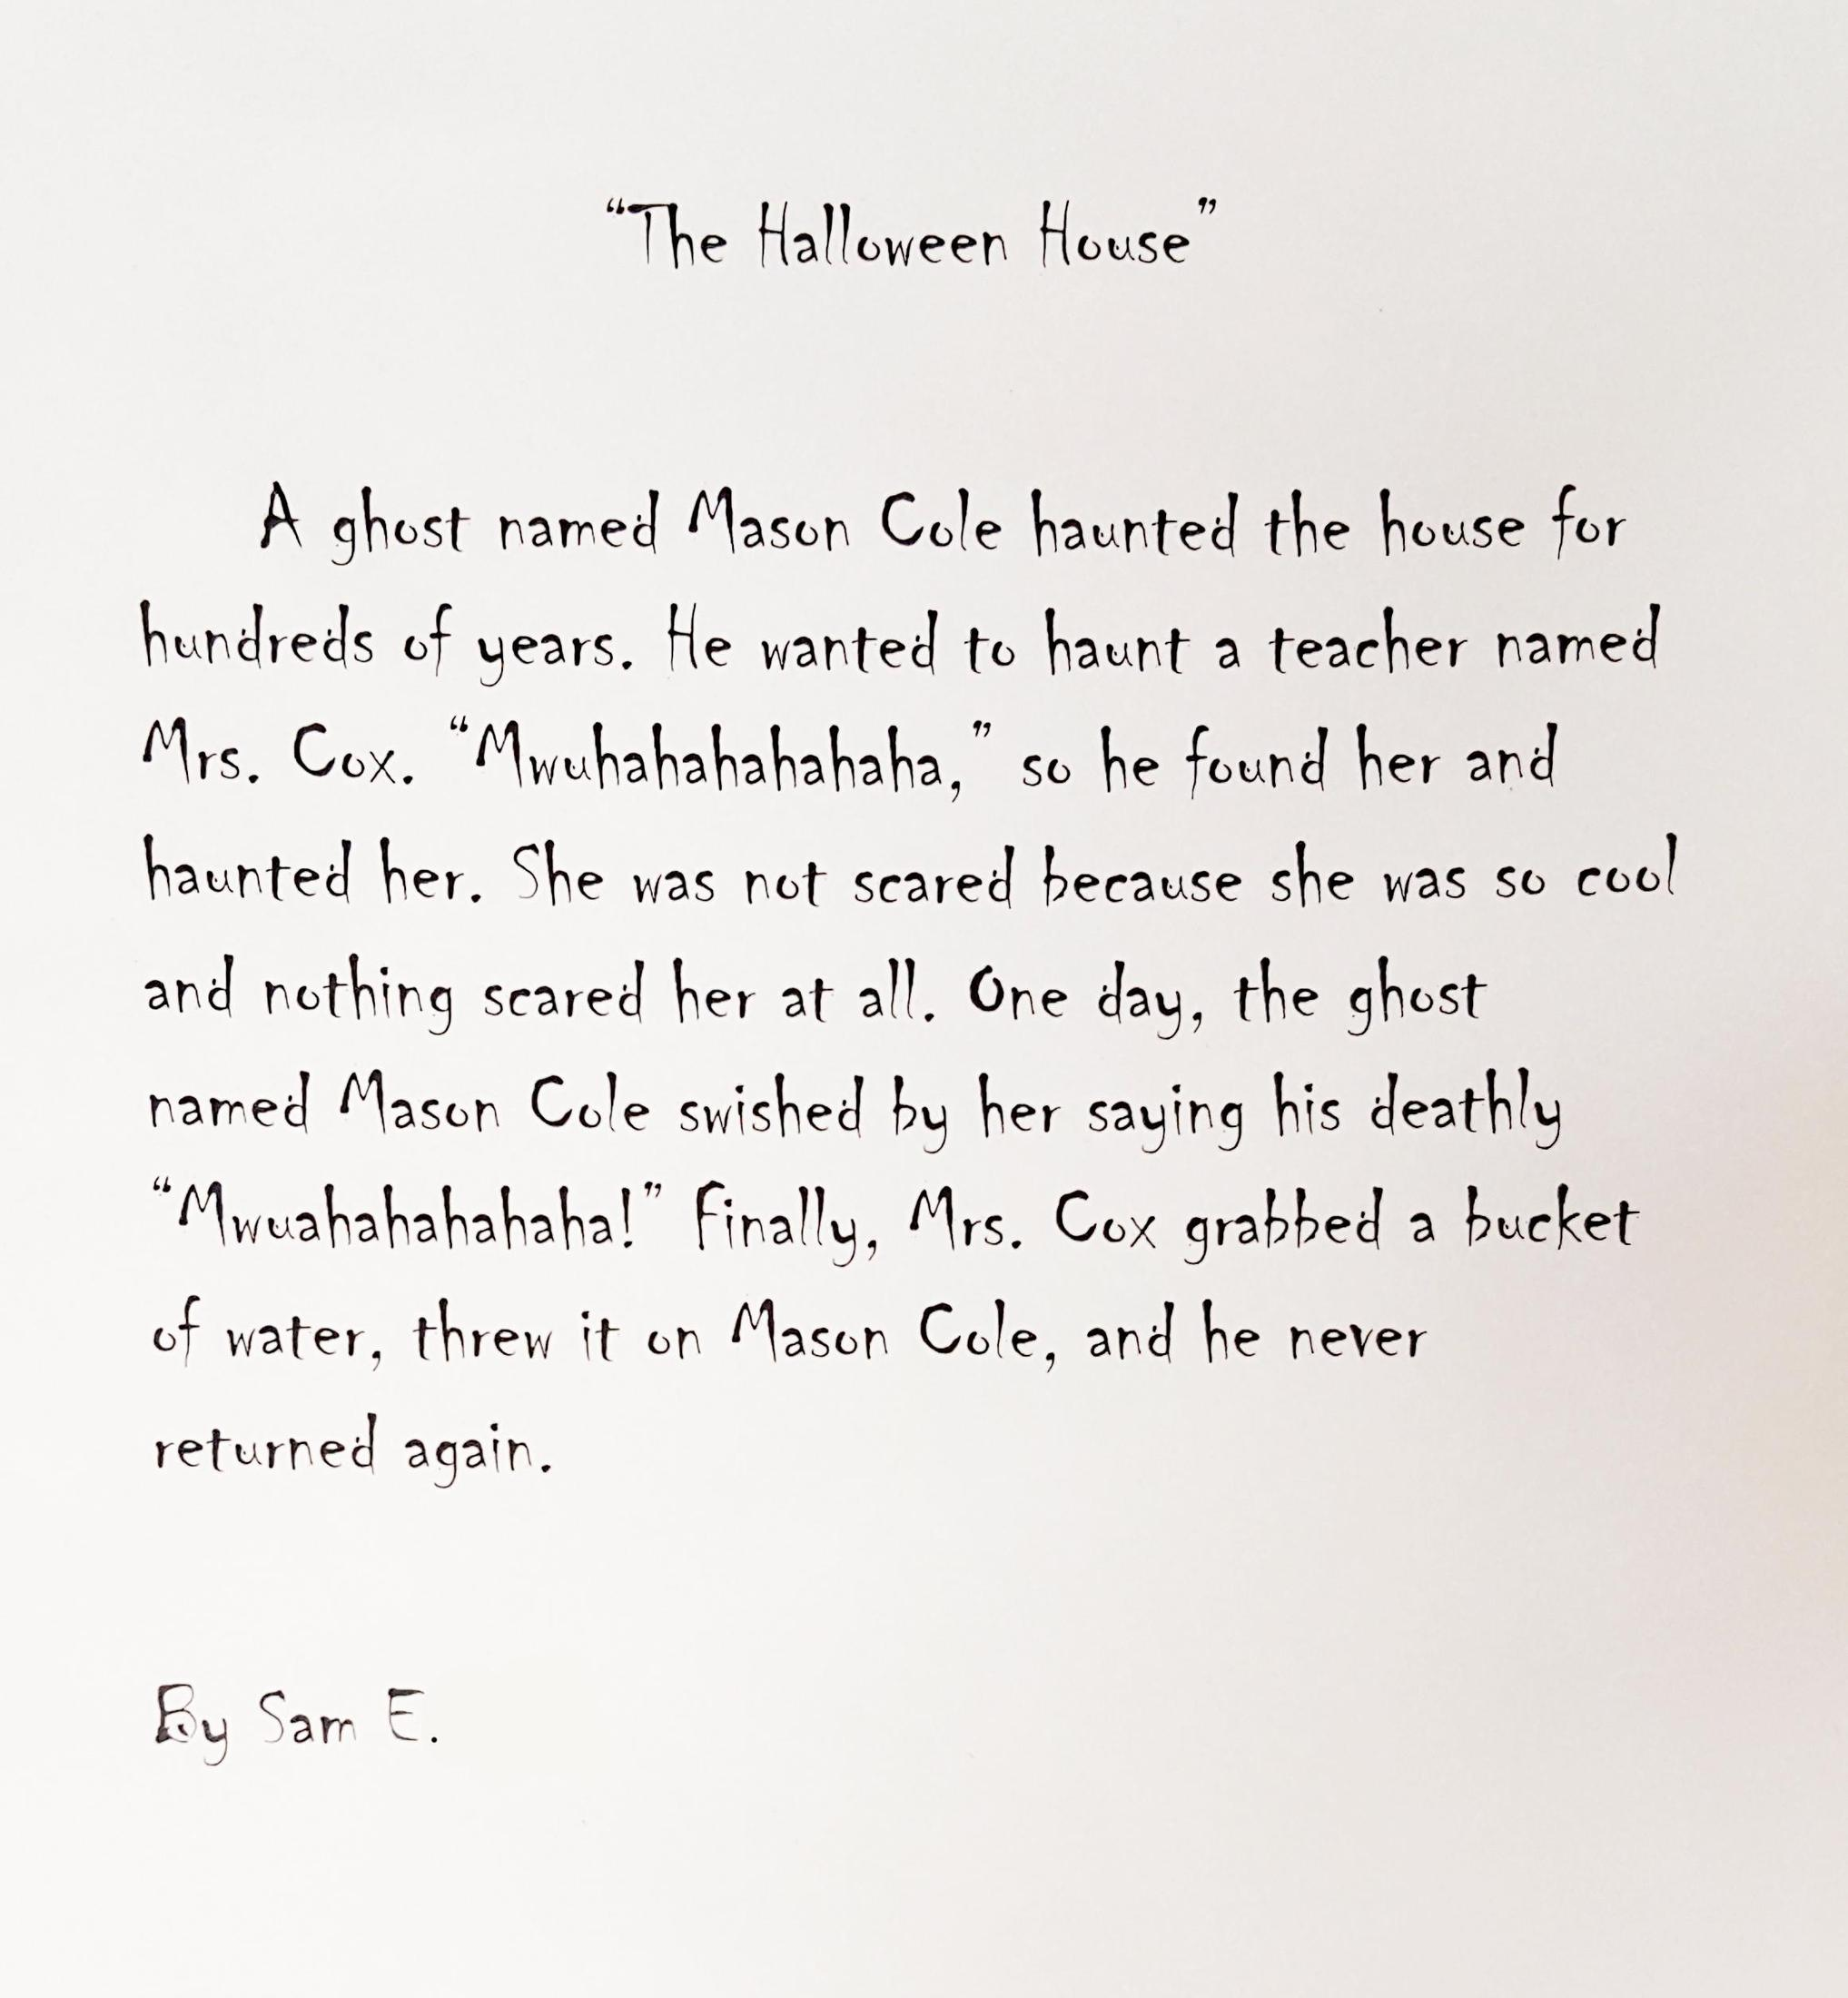 Second grader's spooky Halloween tale